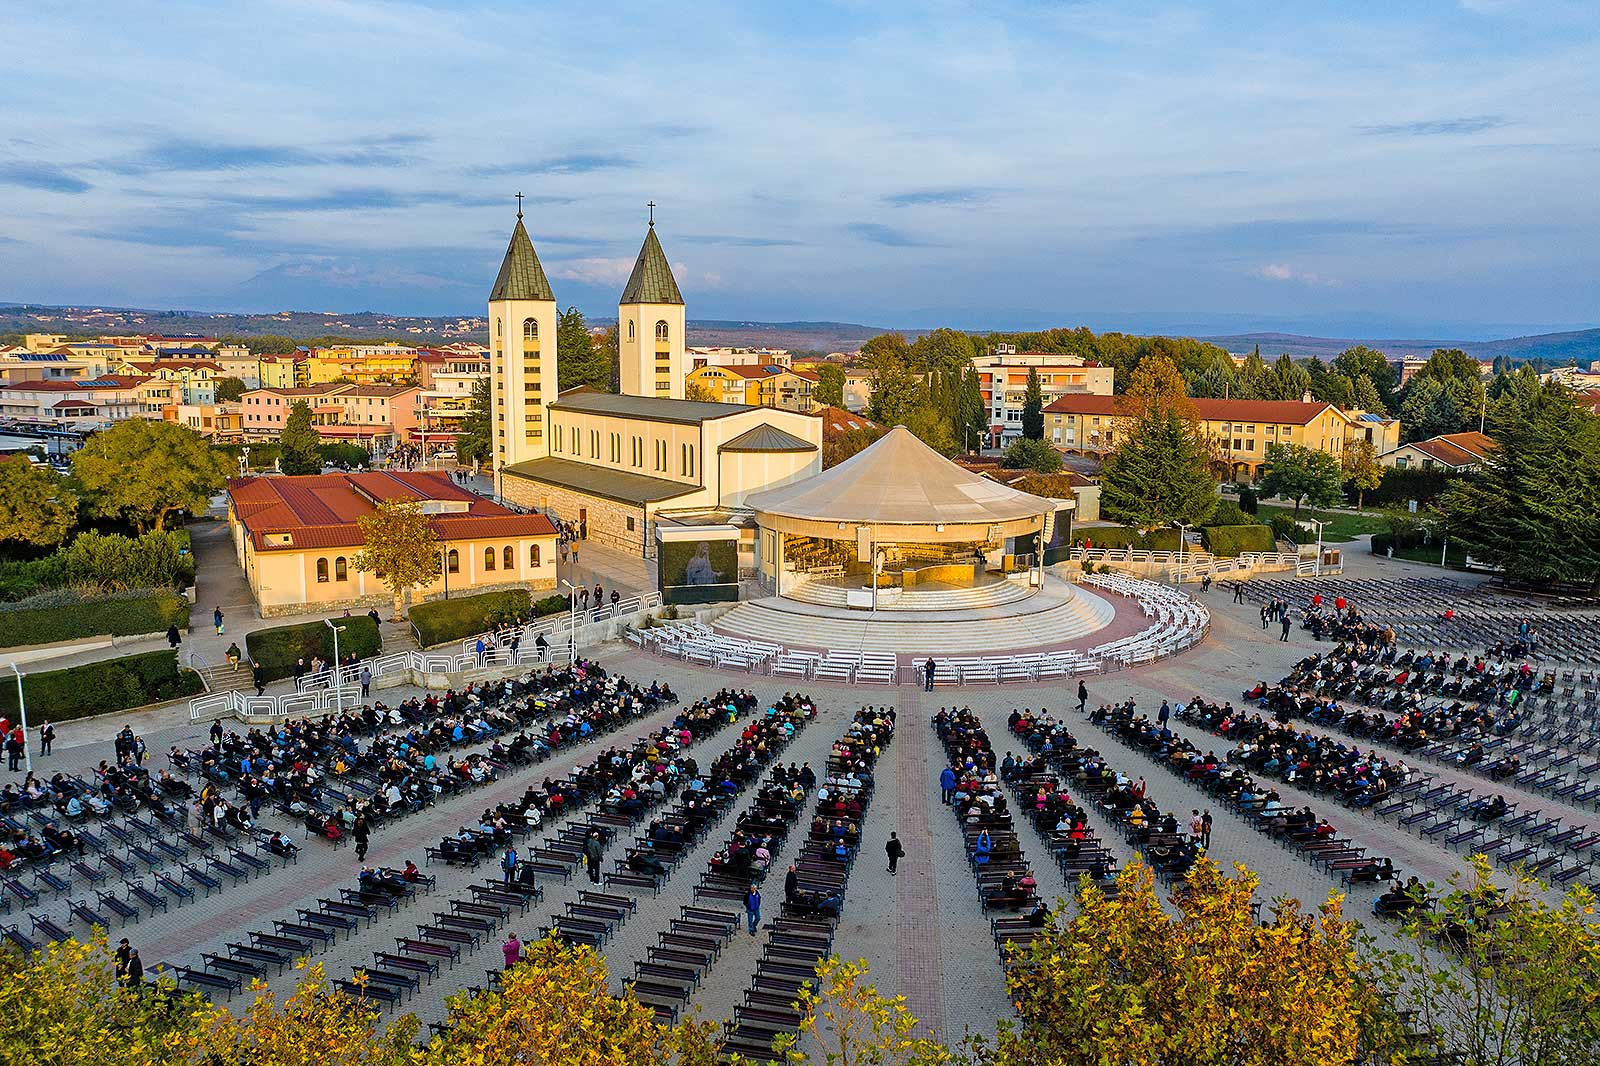 The messages of Our Lady of Medjugorje